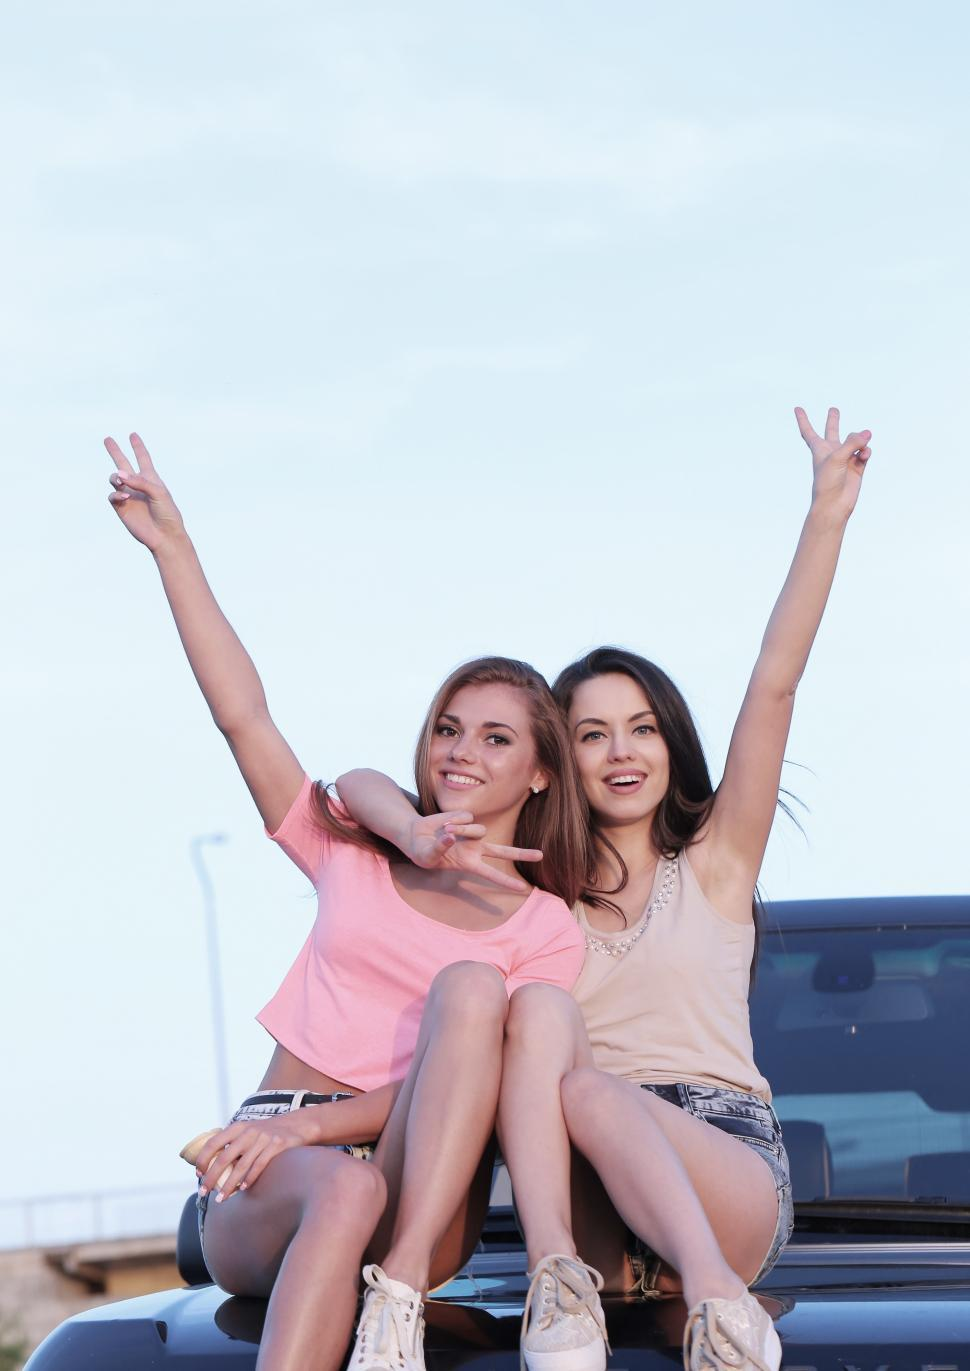 Download Free Stock Photo of Two Young Women Sitting on a Truck